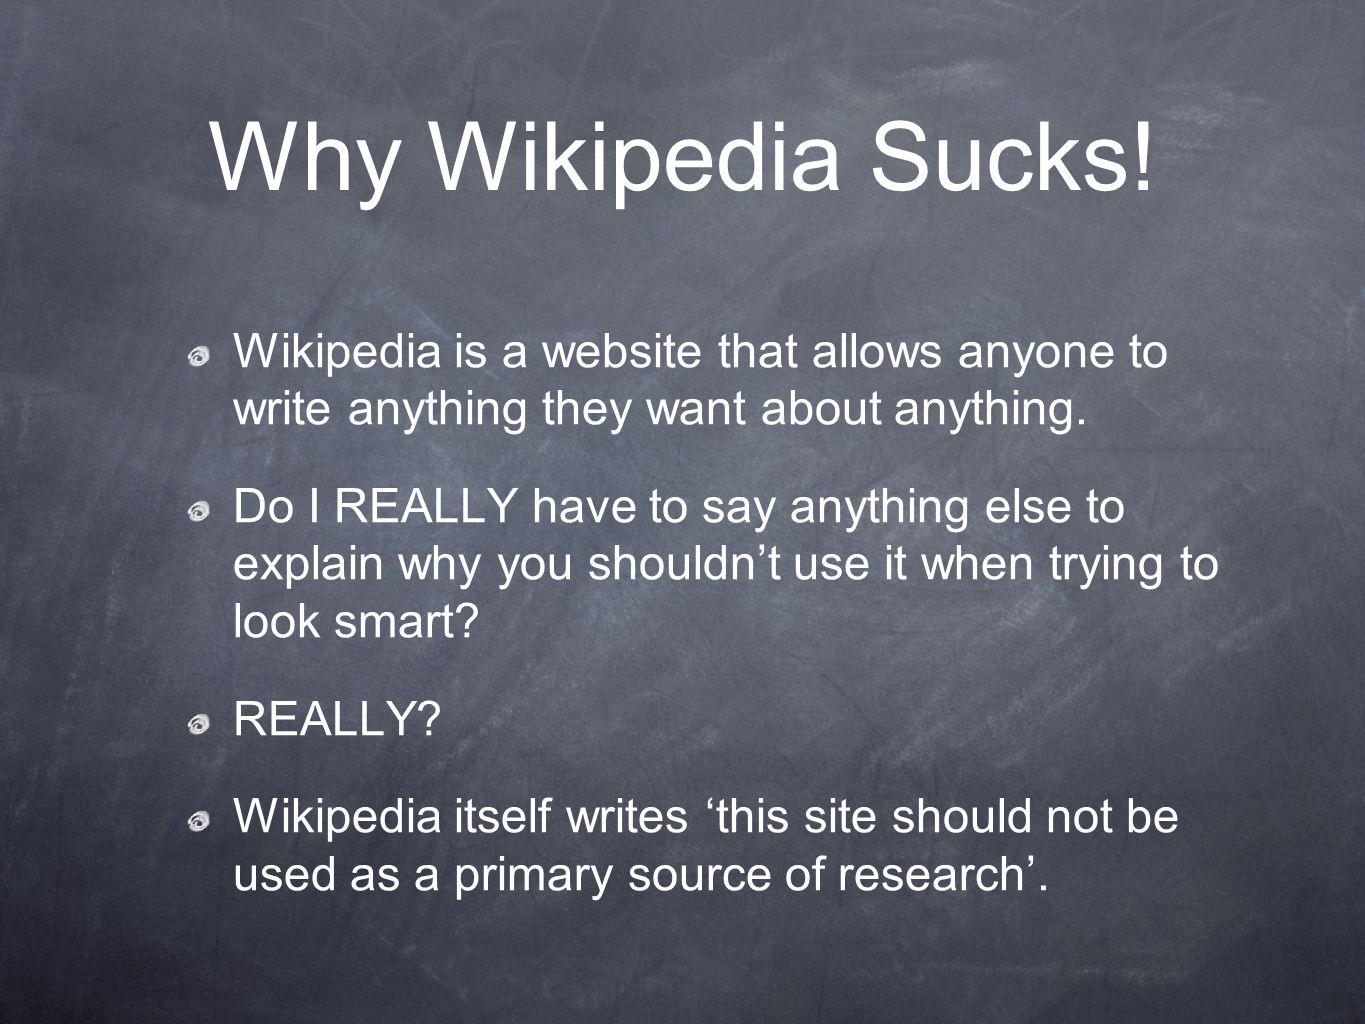 Why Wikipedia Sucks.